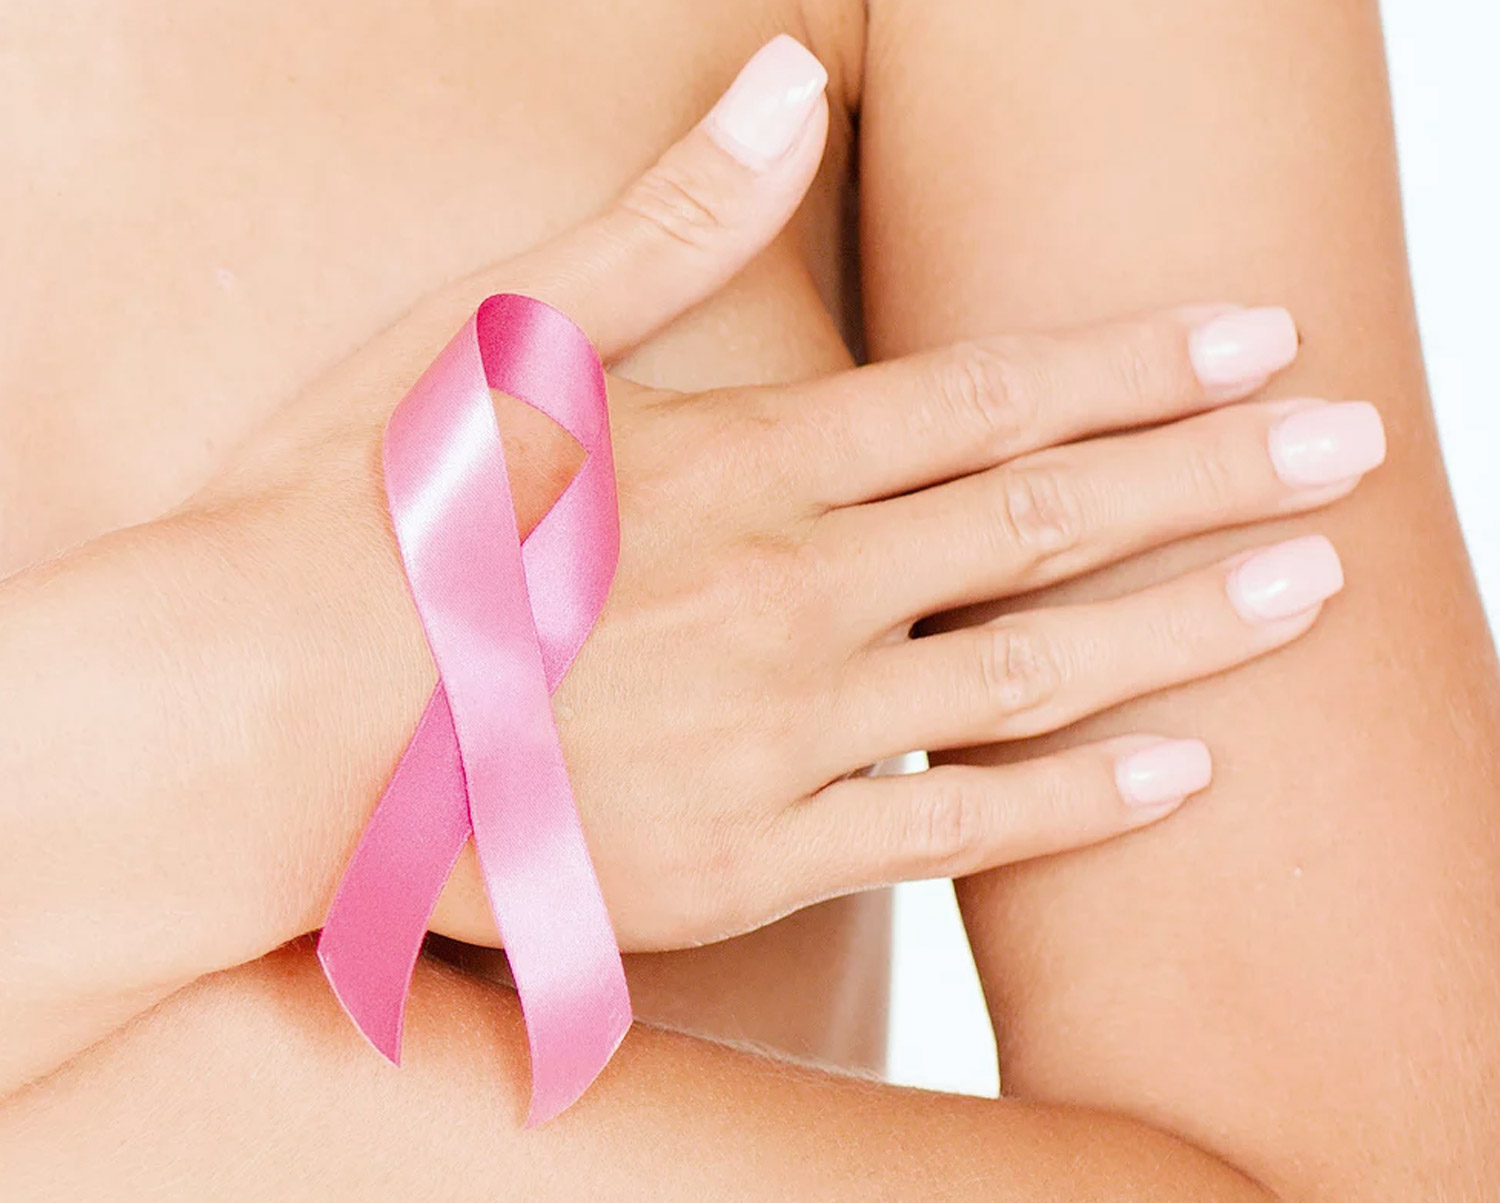 breast reconstruction example image